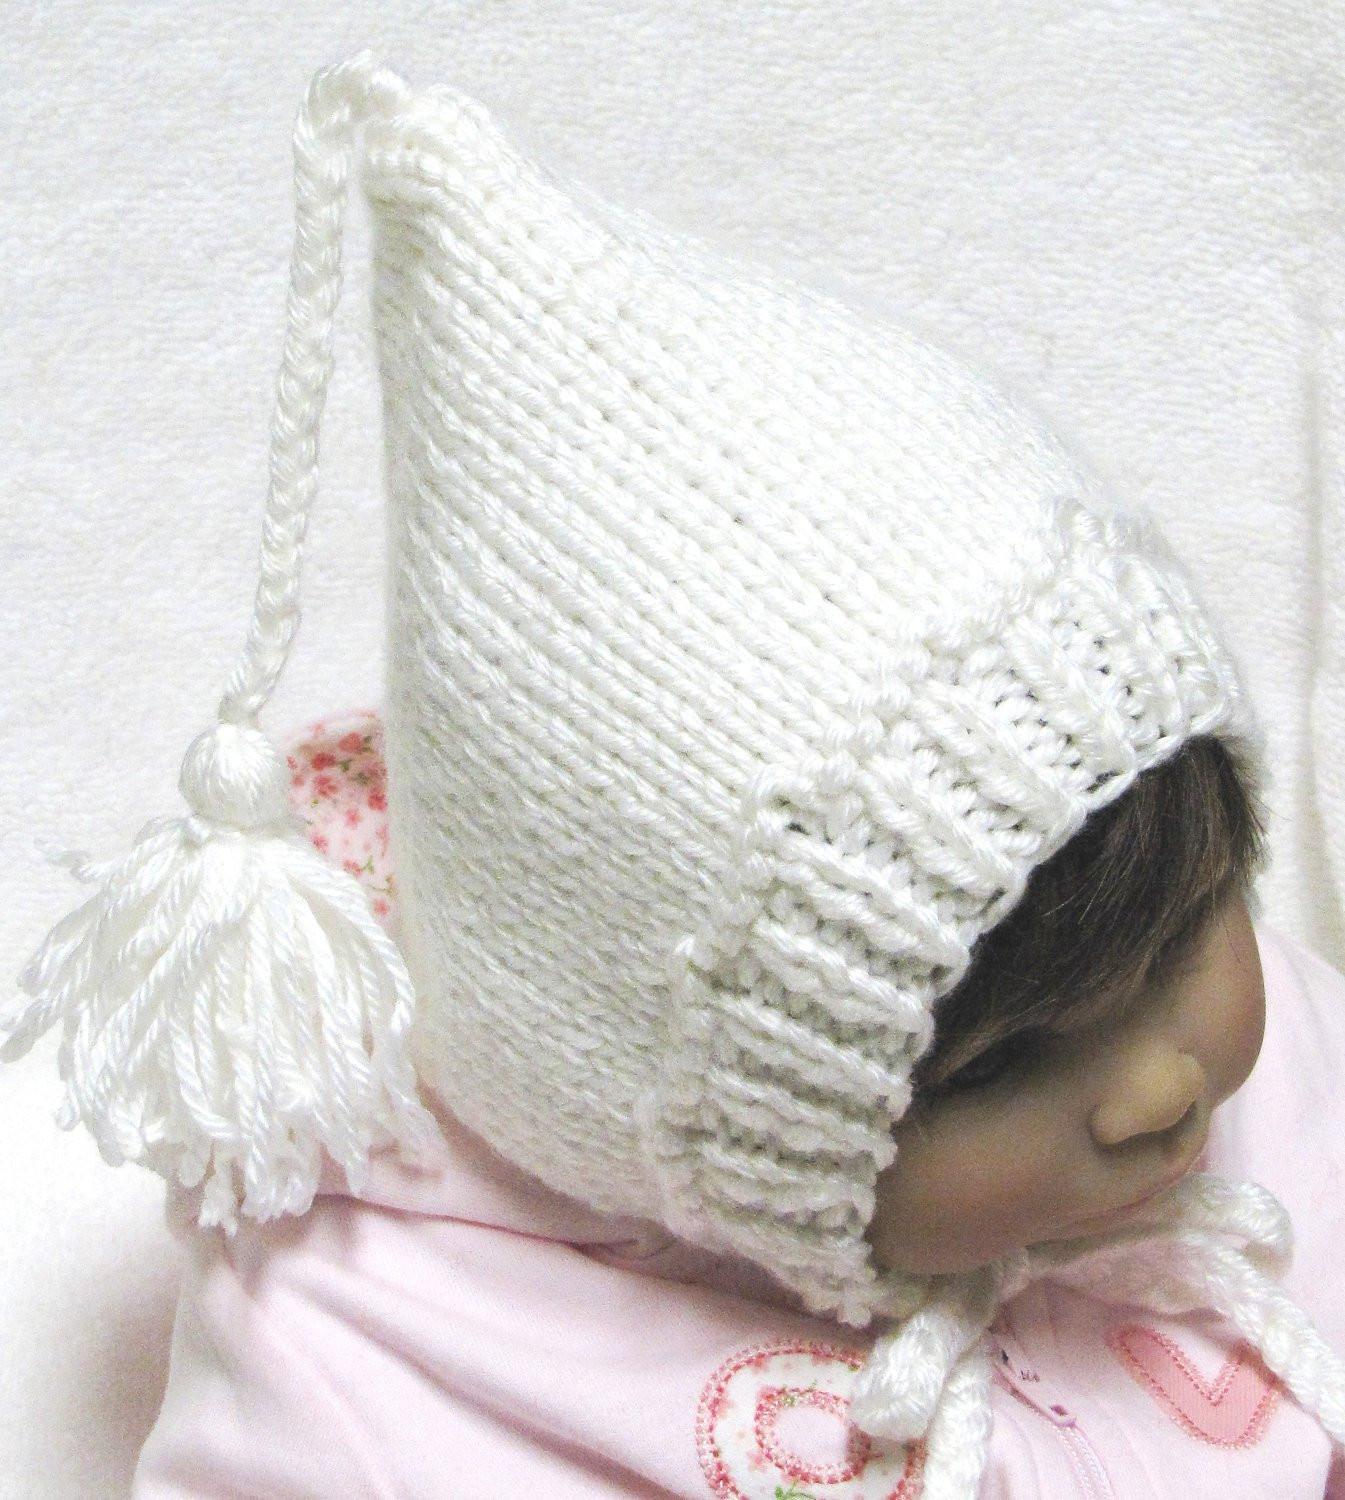 Baby Hat Knitting Pattern Unique Pixie Baby Hat Knitting Pattern with Tassel In 3 Sizes Pdf Of New 44 Pictures Baby Hat Knitting Pattern